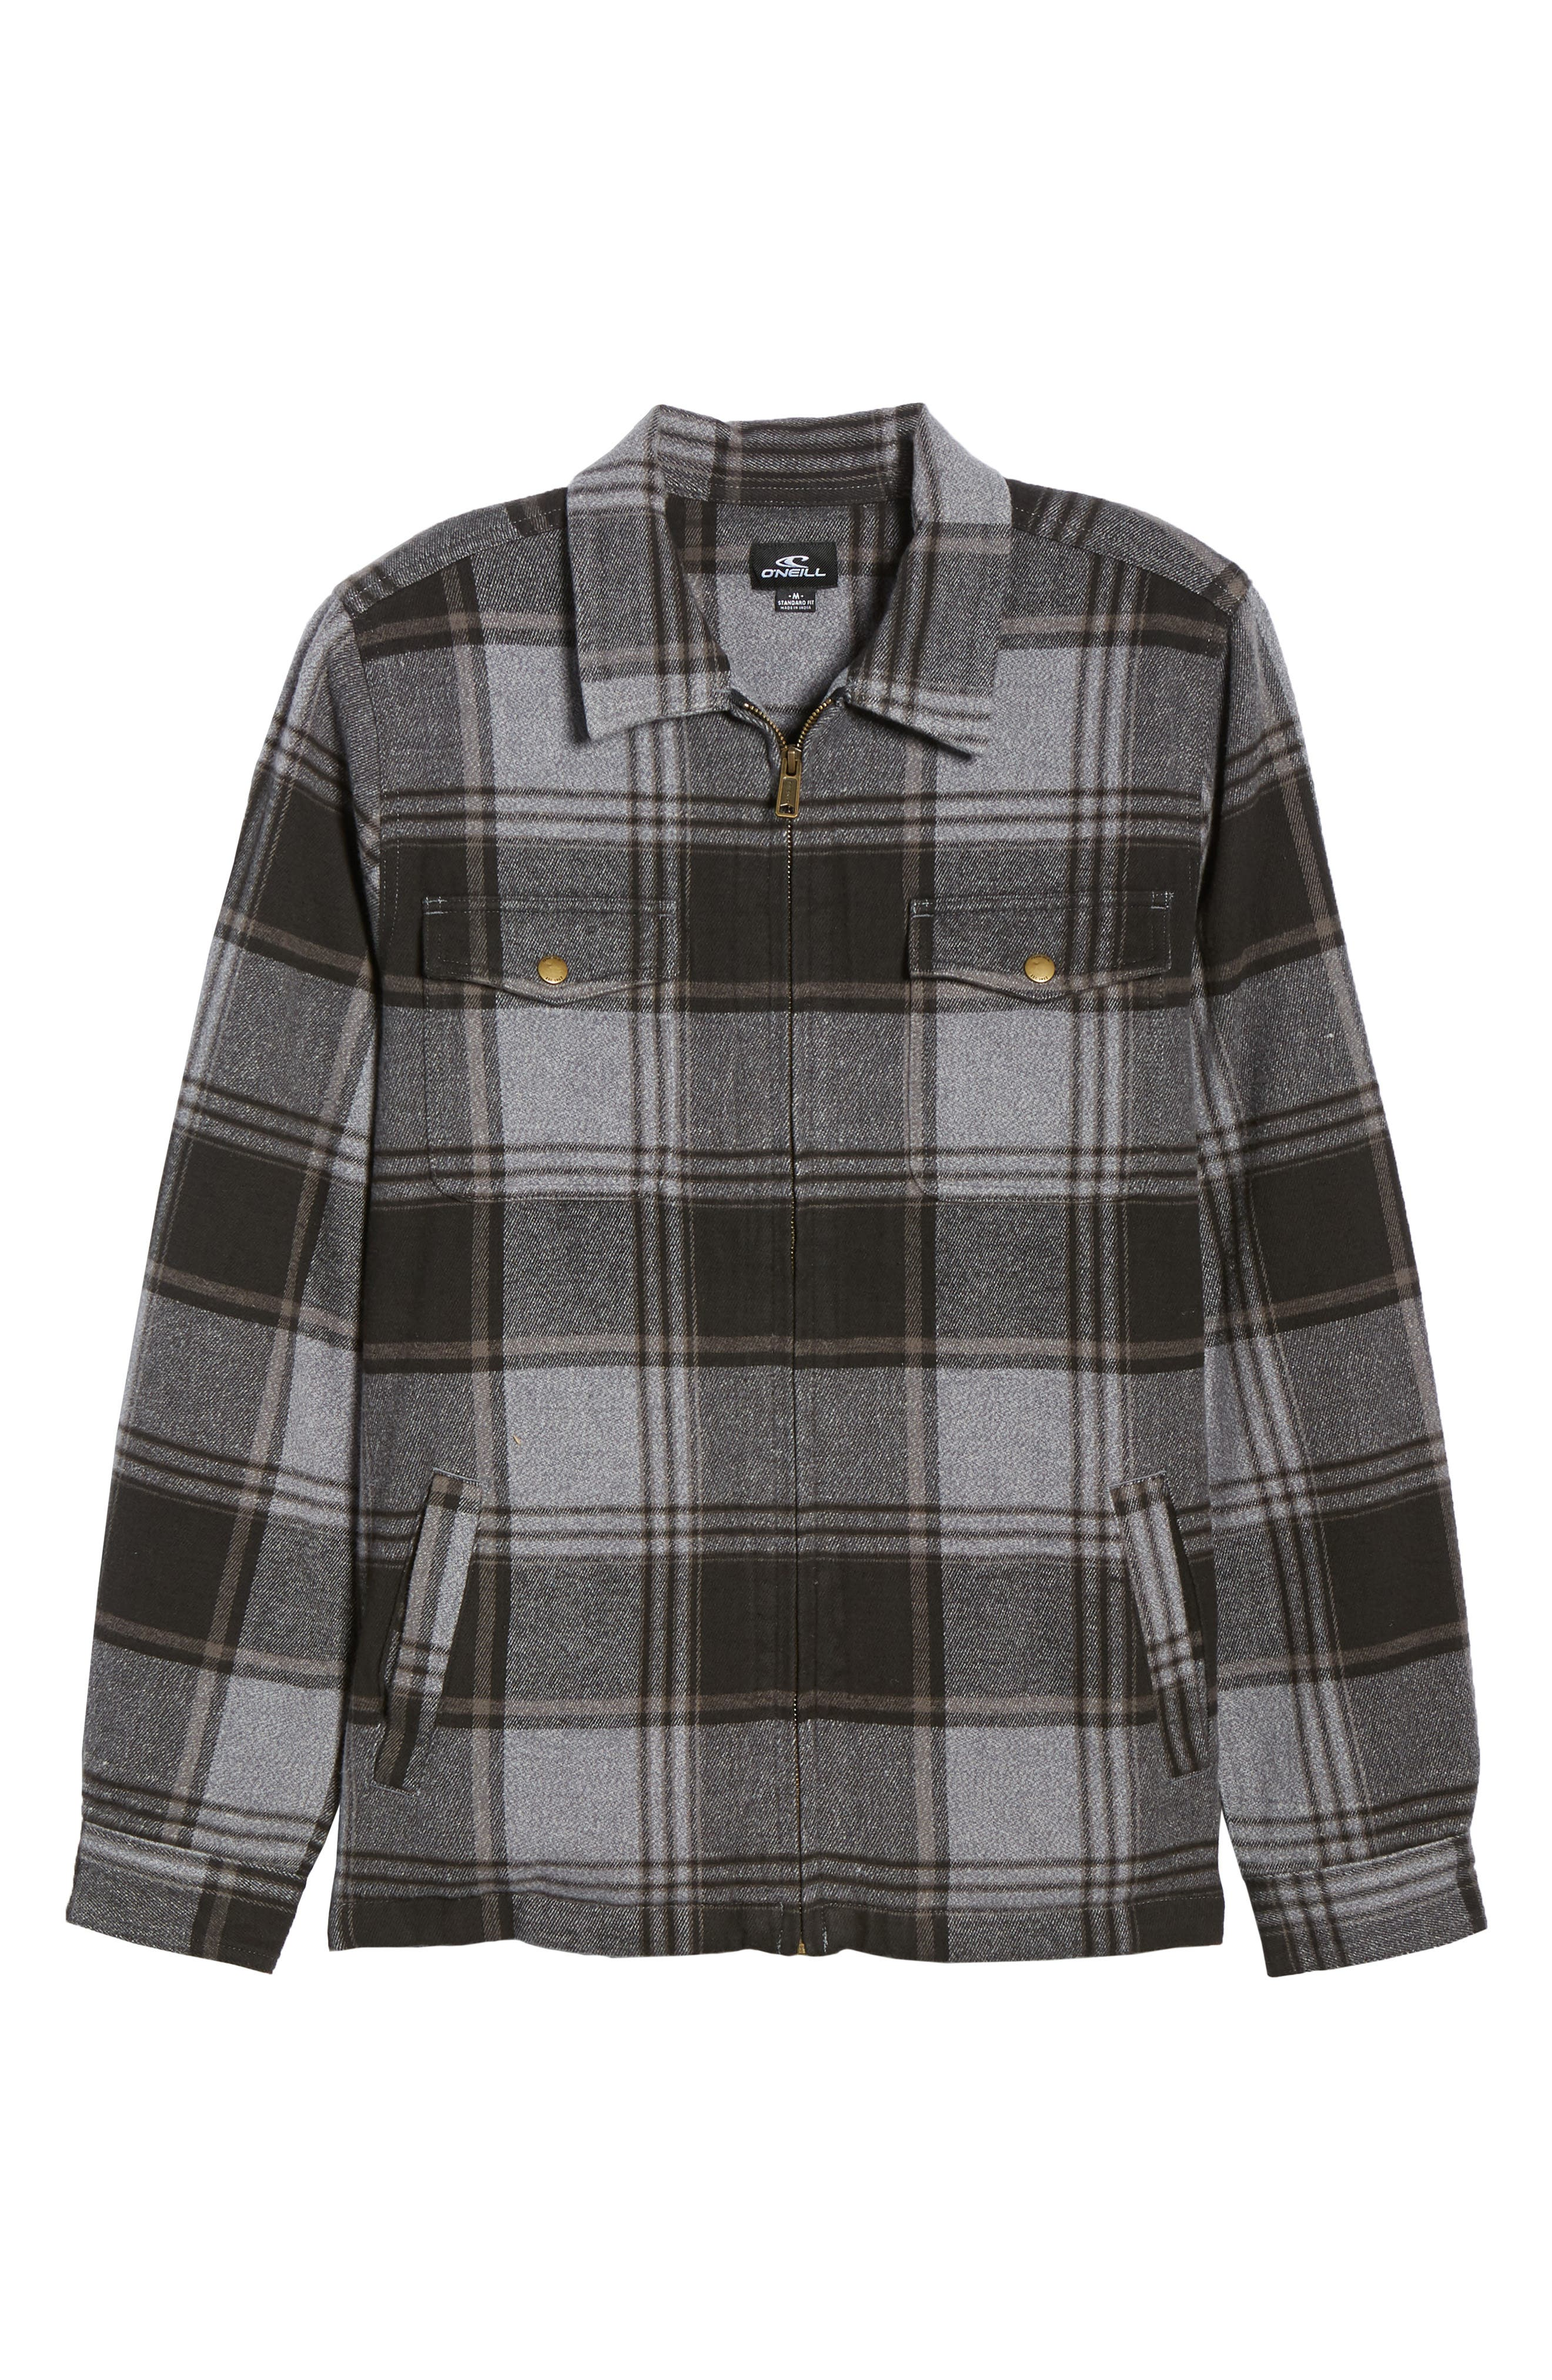 Lodge Flannel Shirt Jacket,                             Alternate thumbnail 3, color,                             ASPHALT